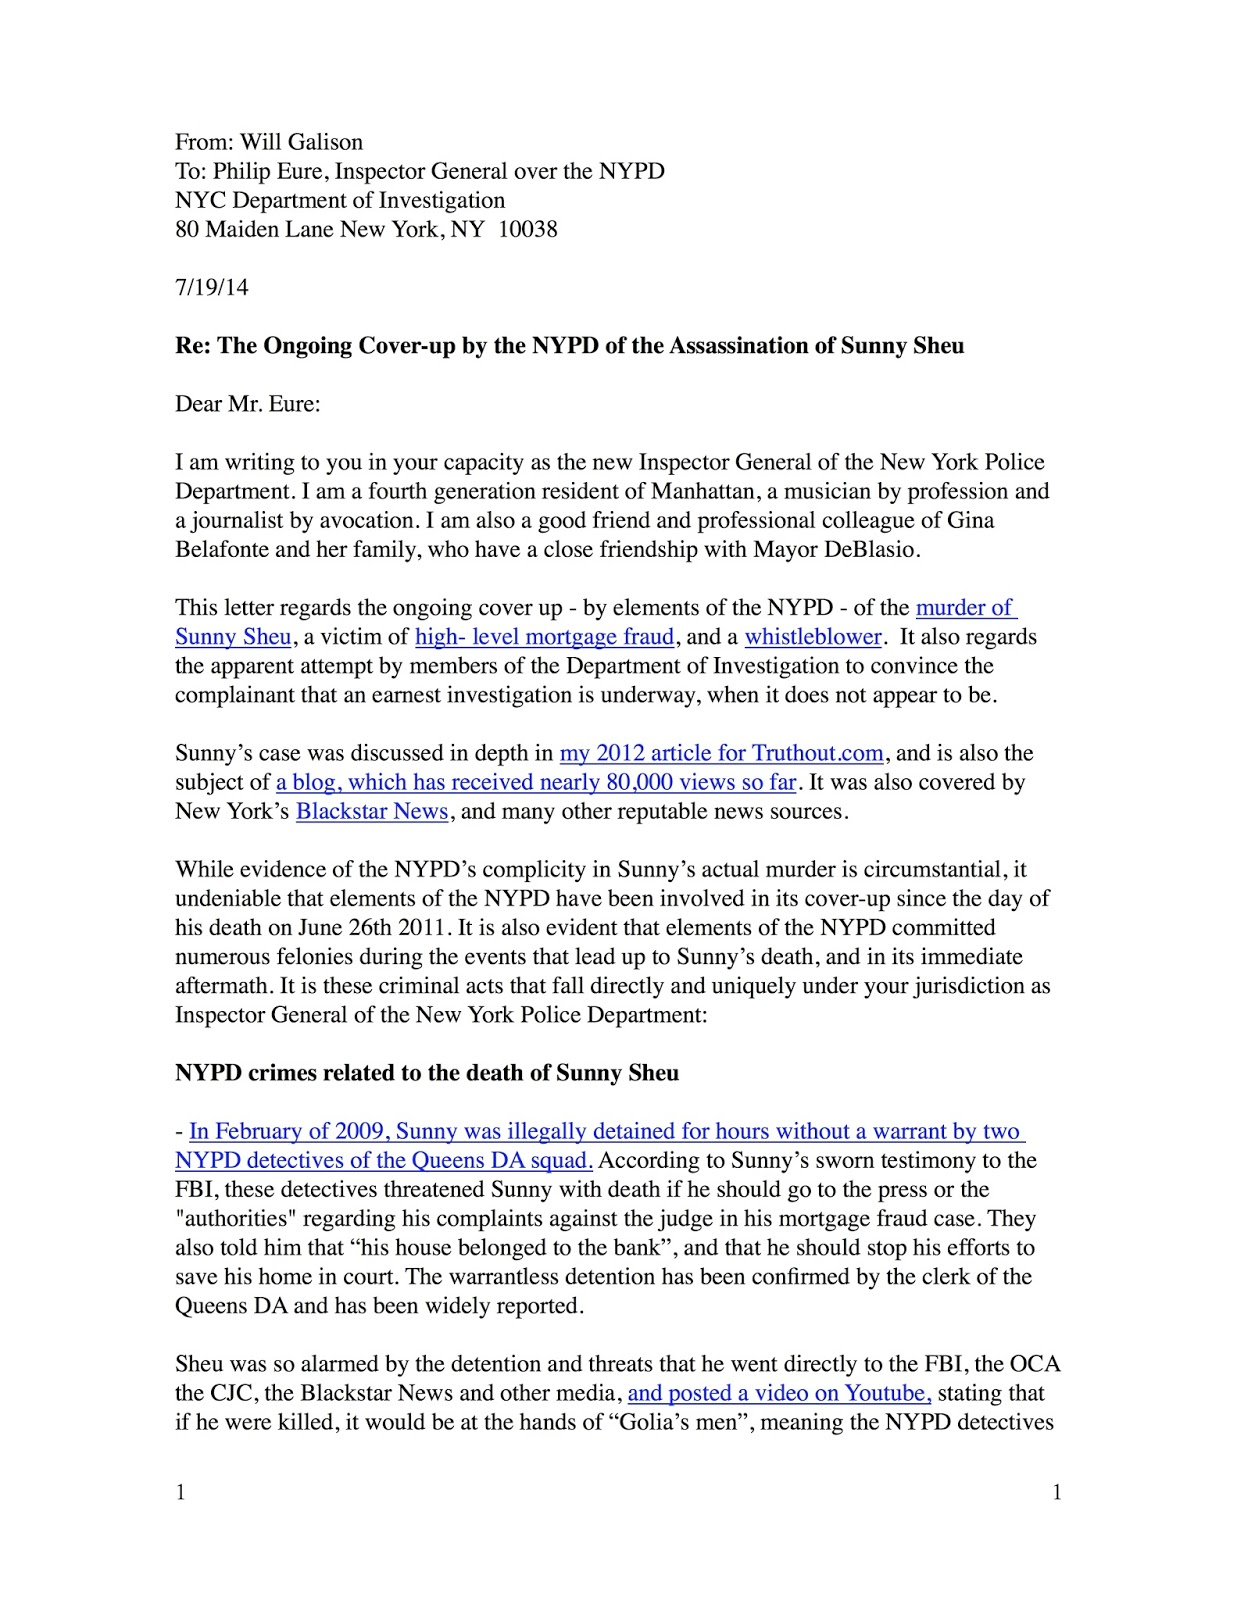 july 19 2014 certified letter to philip eure inspector general for the nypd